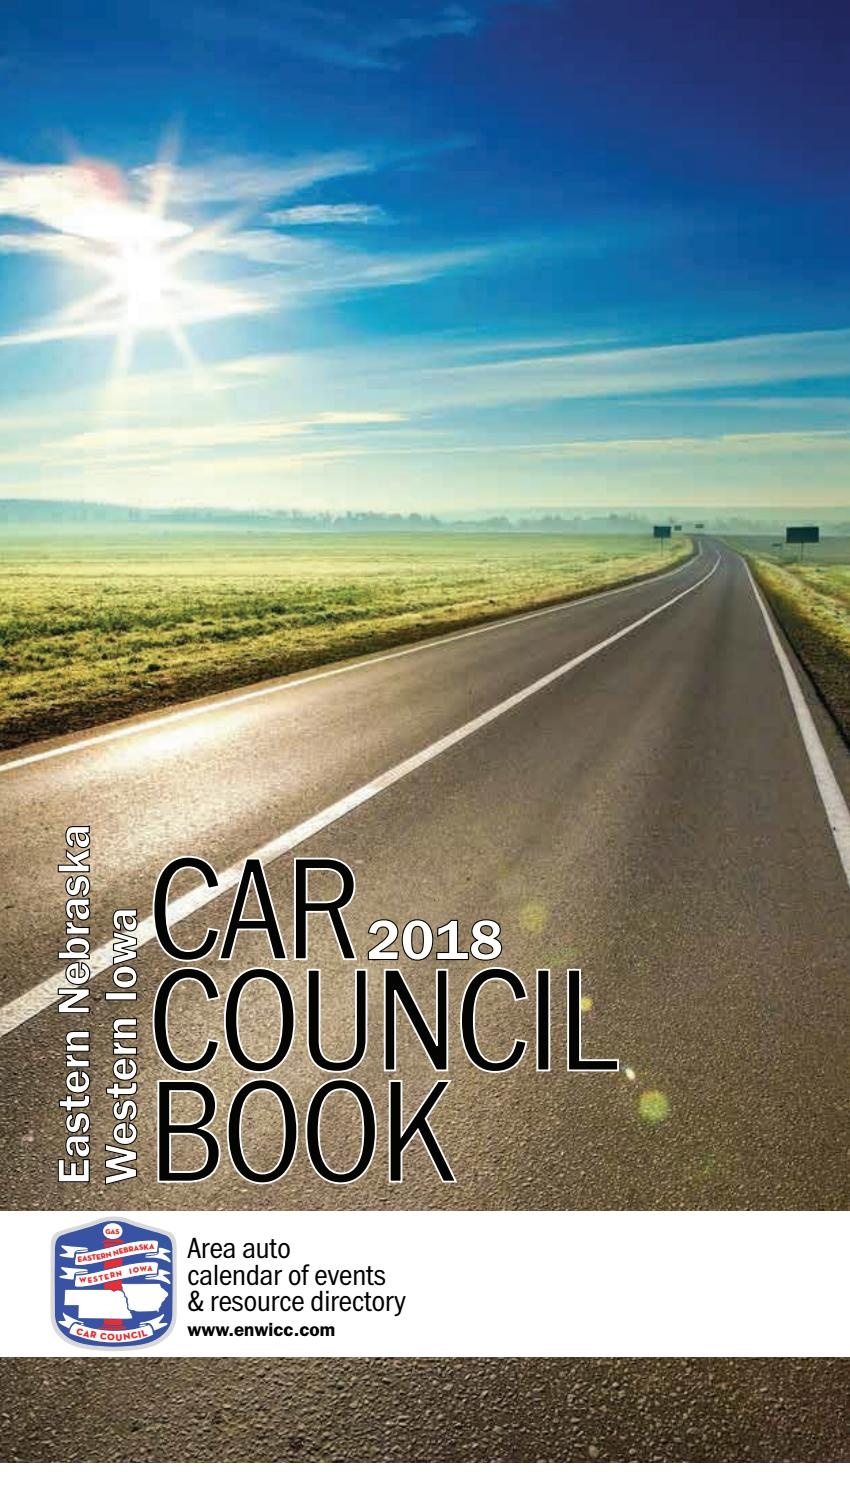 hight resolution of eastern nebraska western iowa car council book 2018 by suburban newspapers issuu